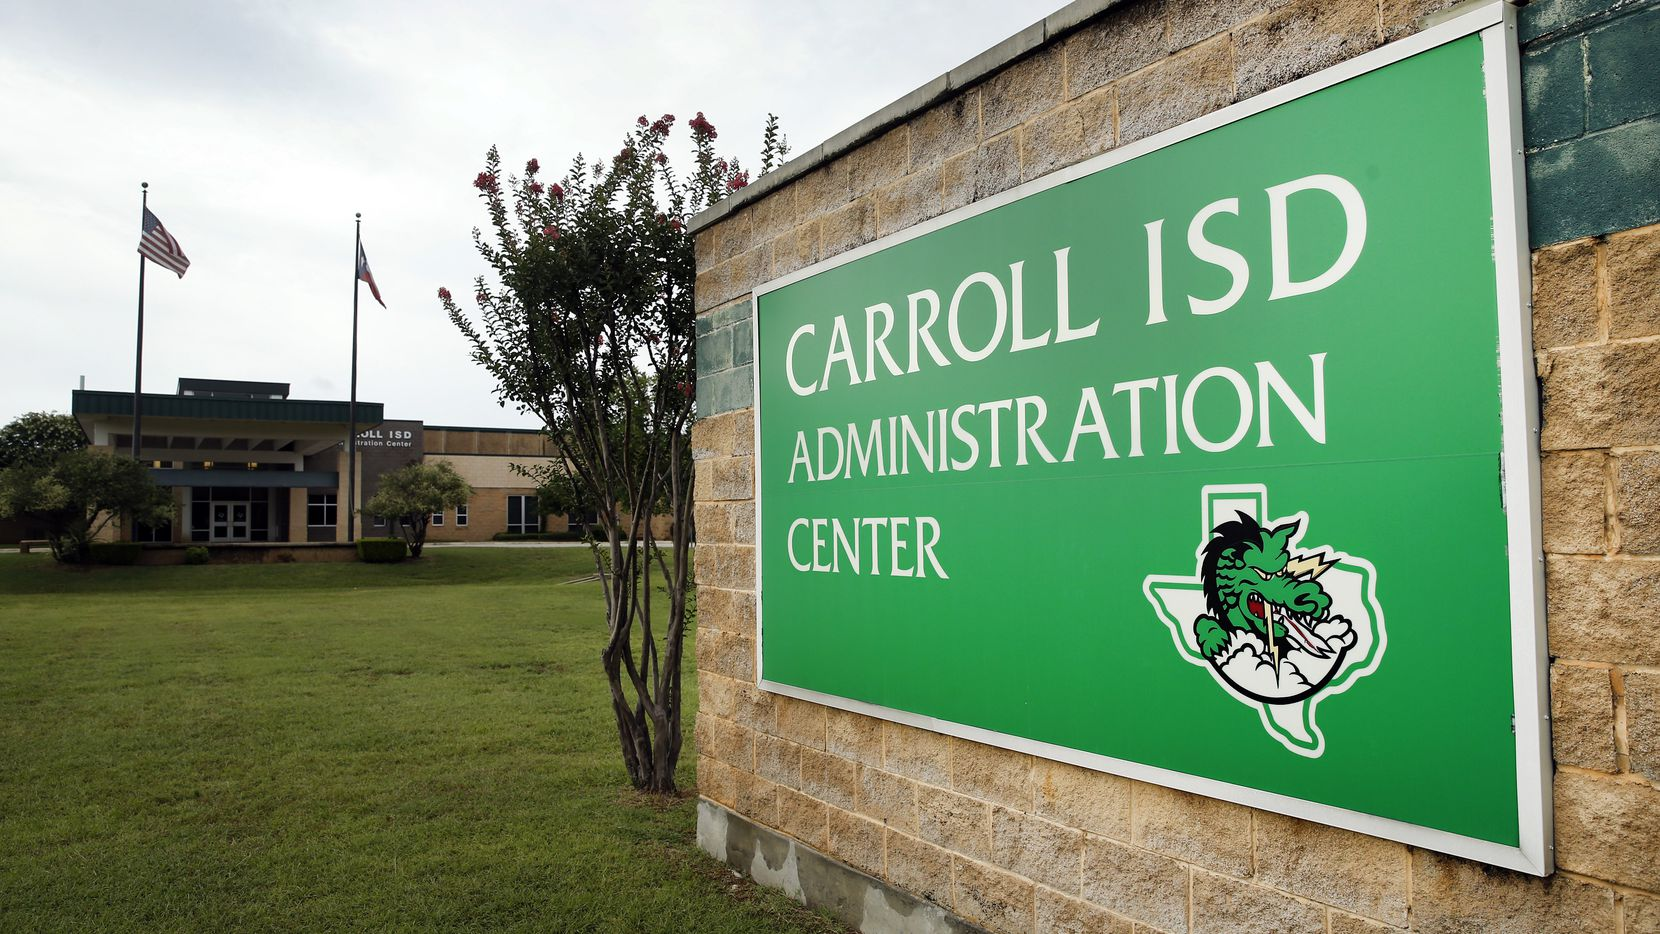 Carroll ISD is seeking parental input regarding the upcoming school calendar.